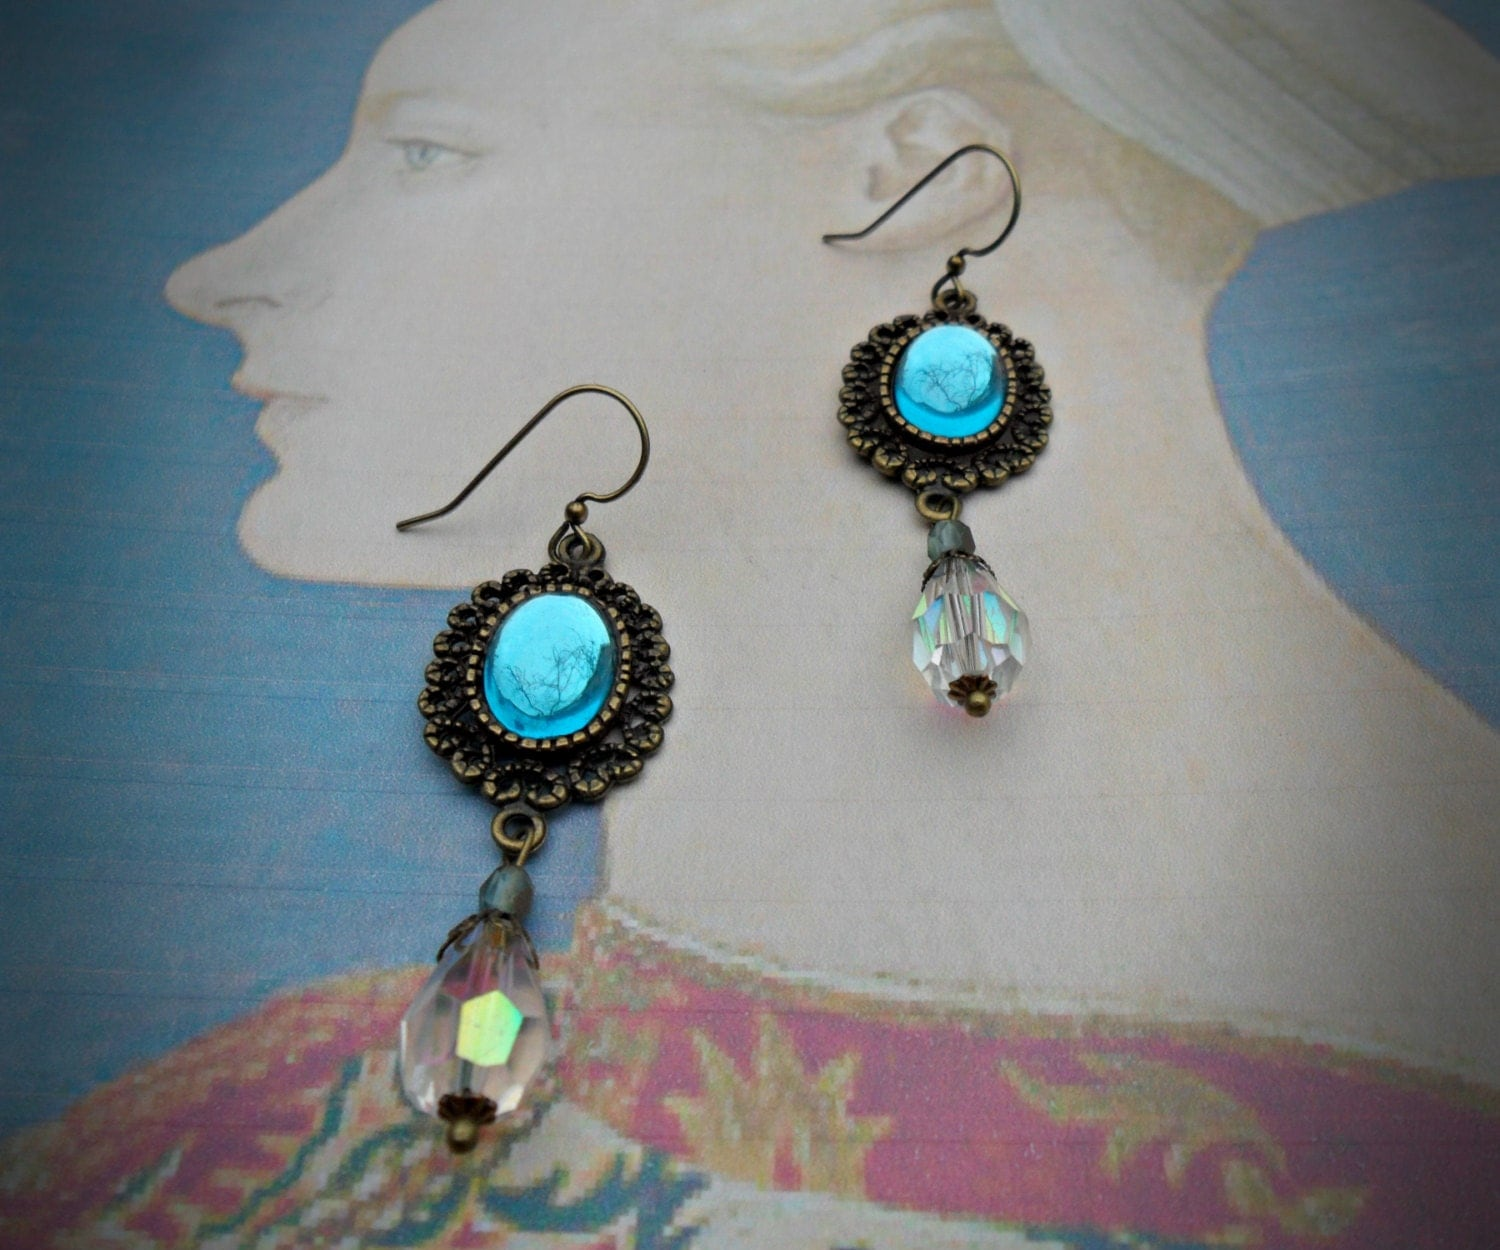 Victorian style earrings with aqua blue foiled glass cabochons AB Czech crystal beads antiqued brass elegant earrings classic earrings